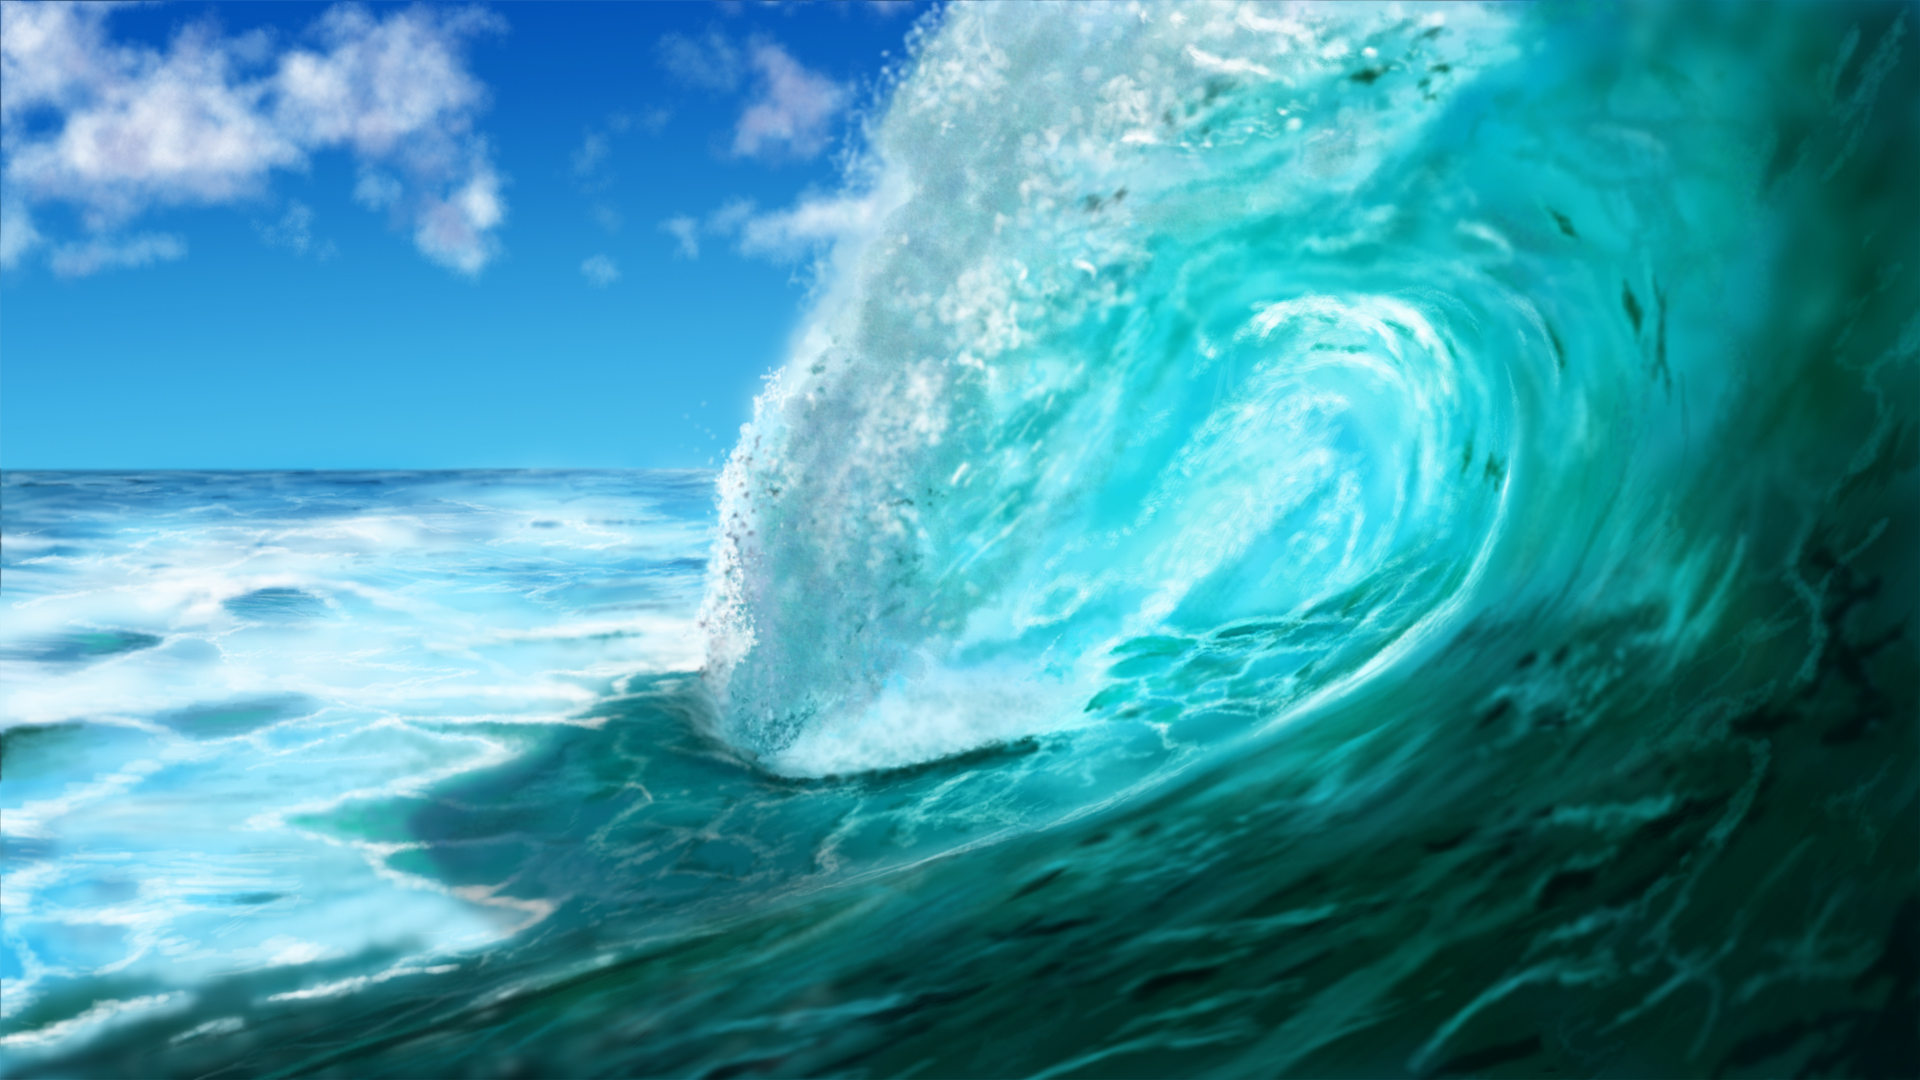 Quotes About The Wave Nature Of Light